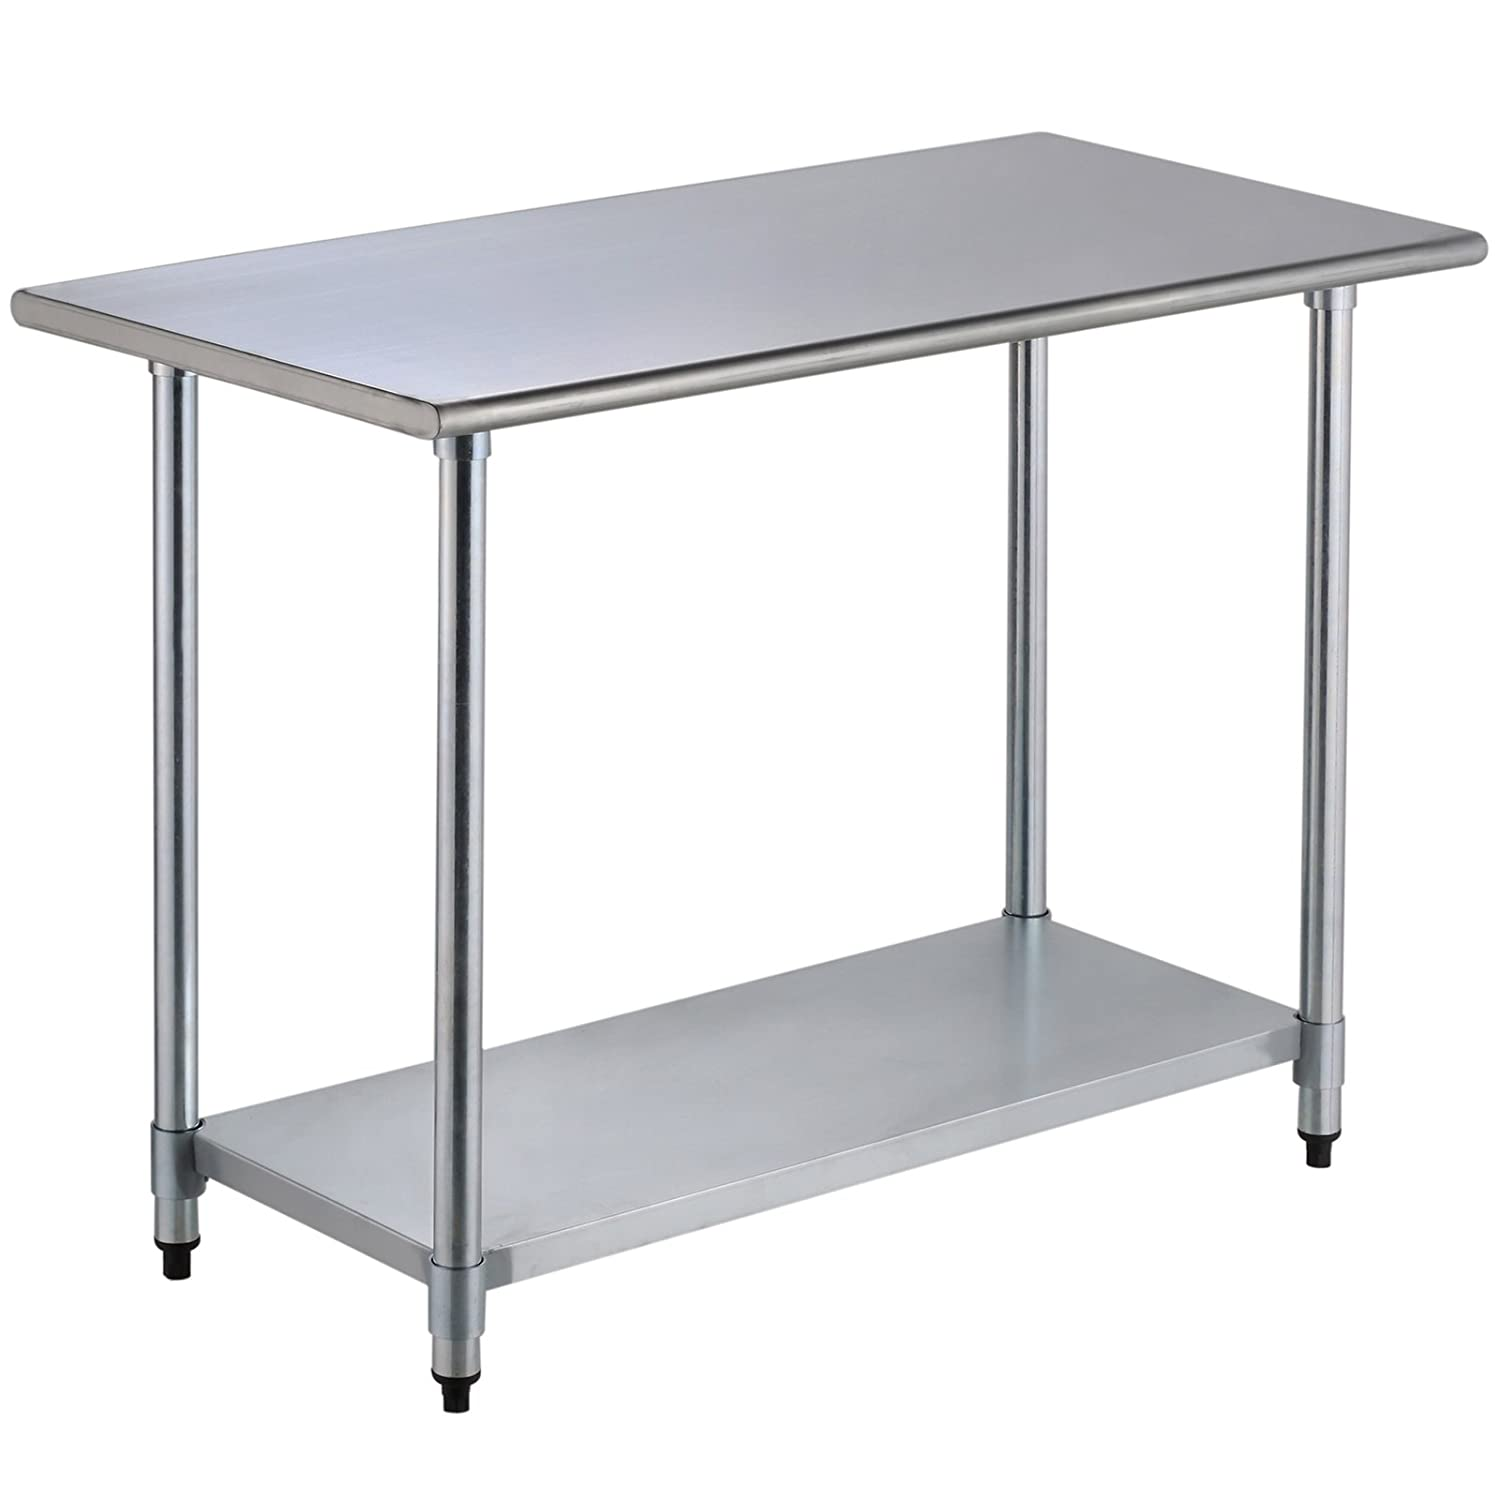 "Amazon Uenjoy 24"" x 48"" mercial Stainless Steel Work Food"